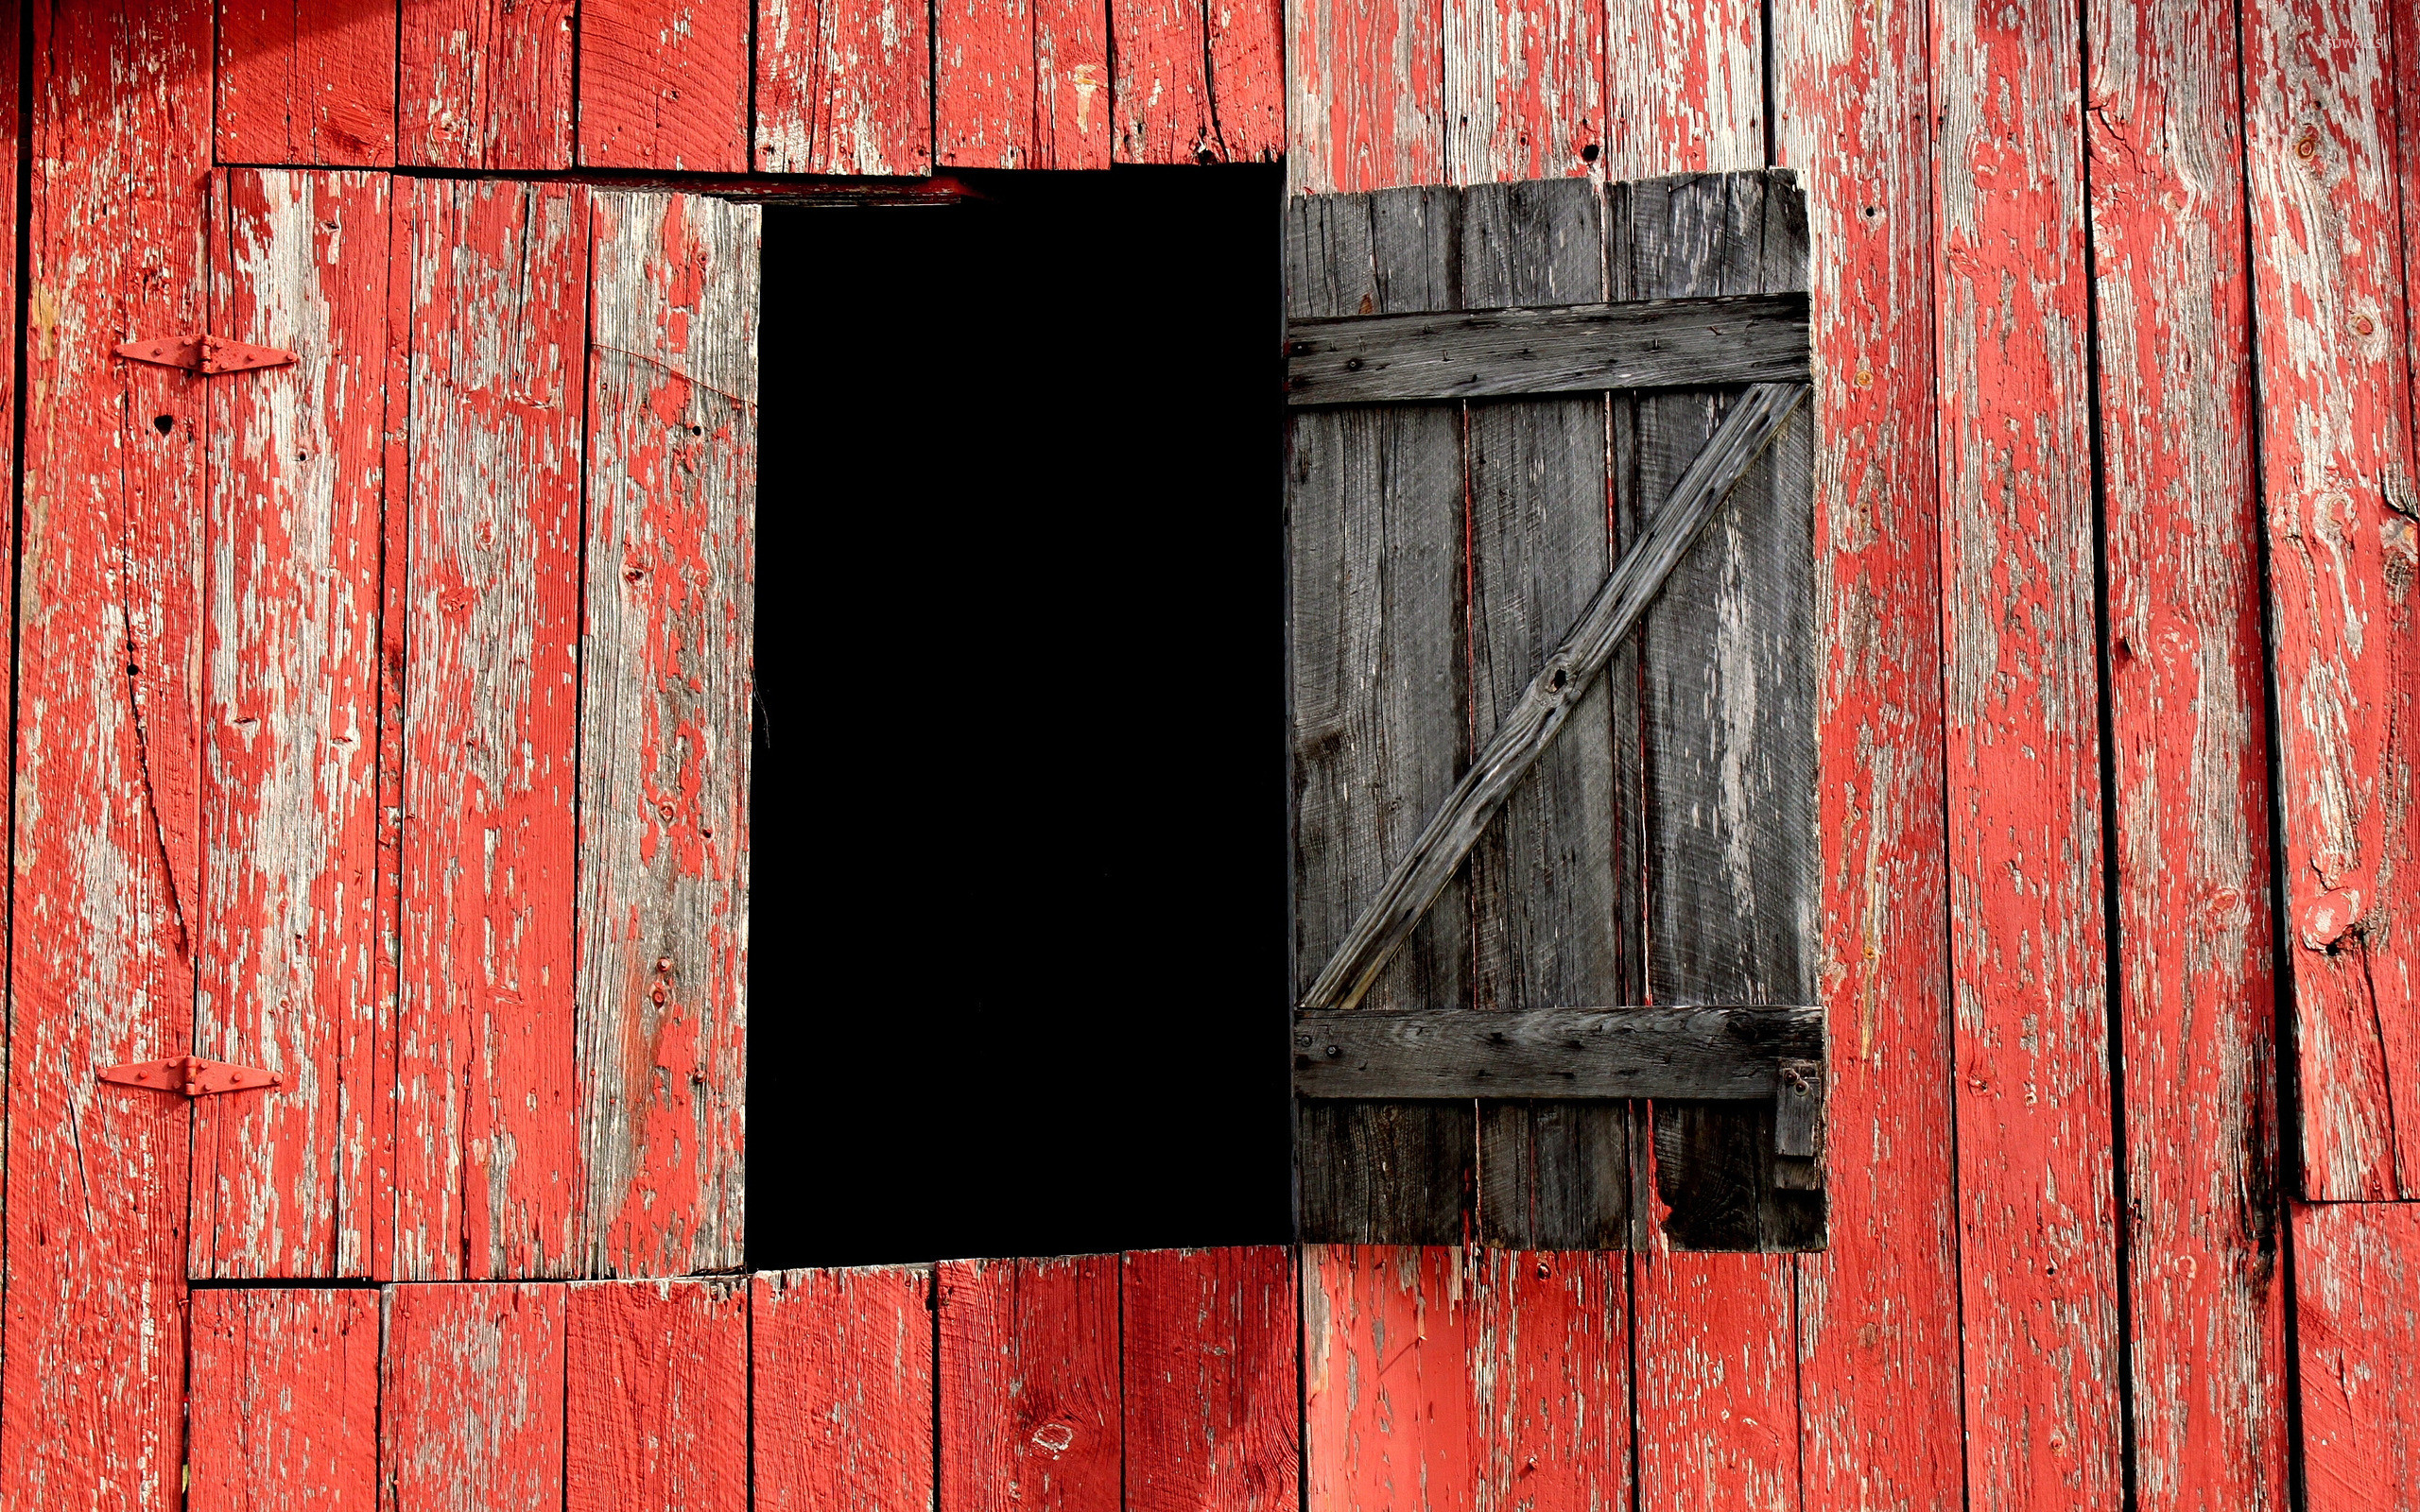 2560x1600 Red barn with a window opened wallpaper